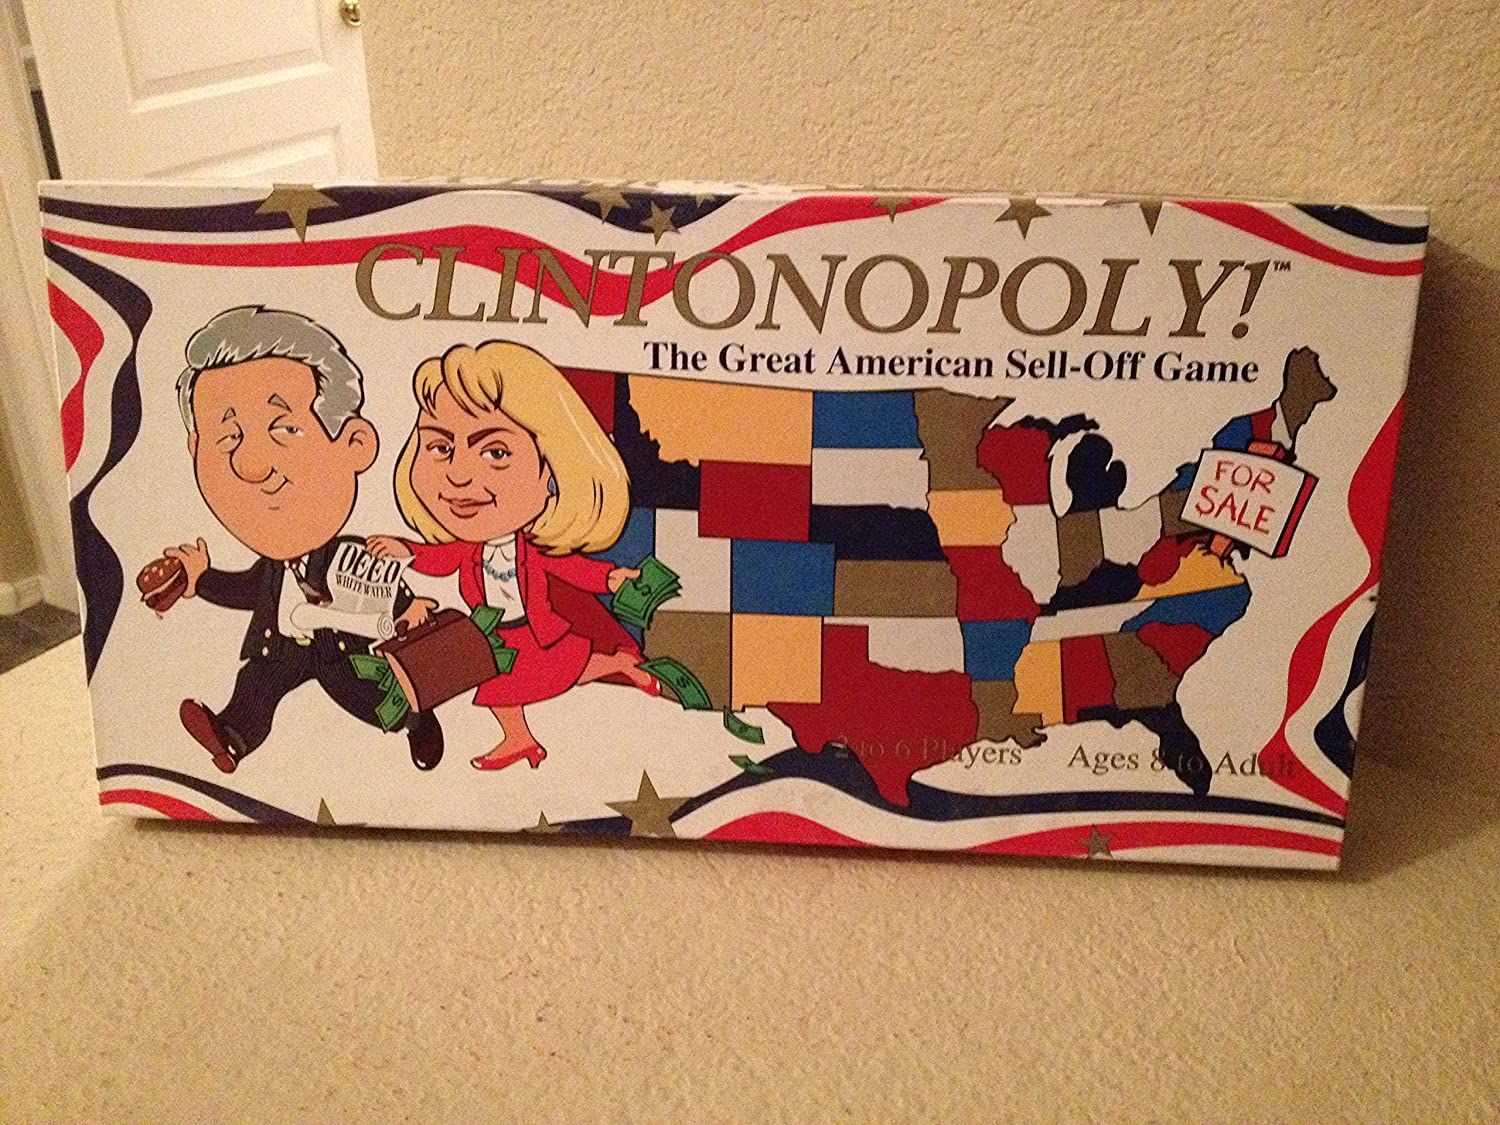 seguro de calidad Clintonopoly The Great American American American Sell-off Game by U.S.A.OPOLY, Inc.  Tienda de moda y compras online.